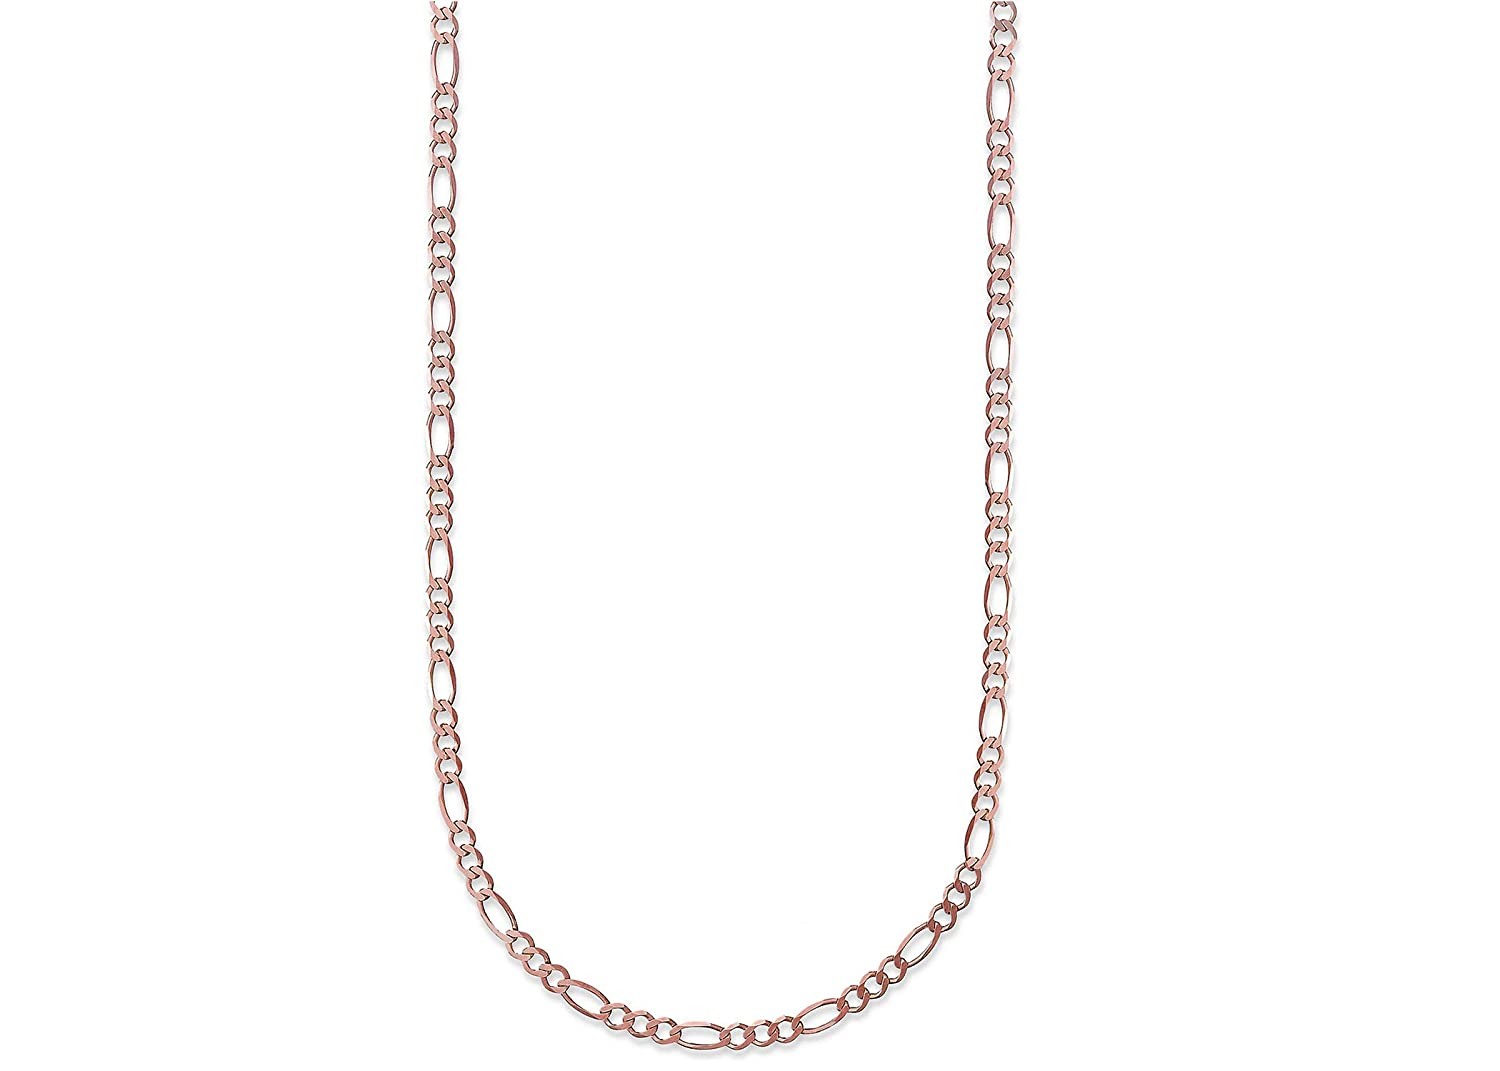 Made In Italy 18K Gold 2.3mm Figaro Link Chain Bracelet or Necklace Multiple Lengths /& Colors Available